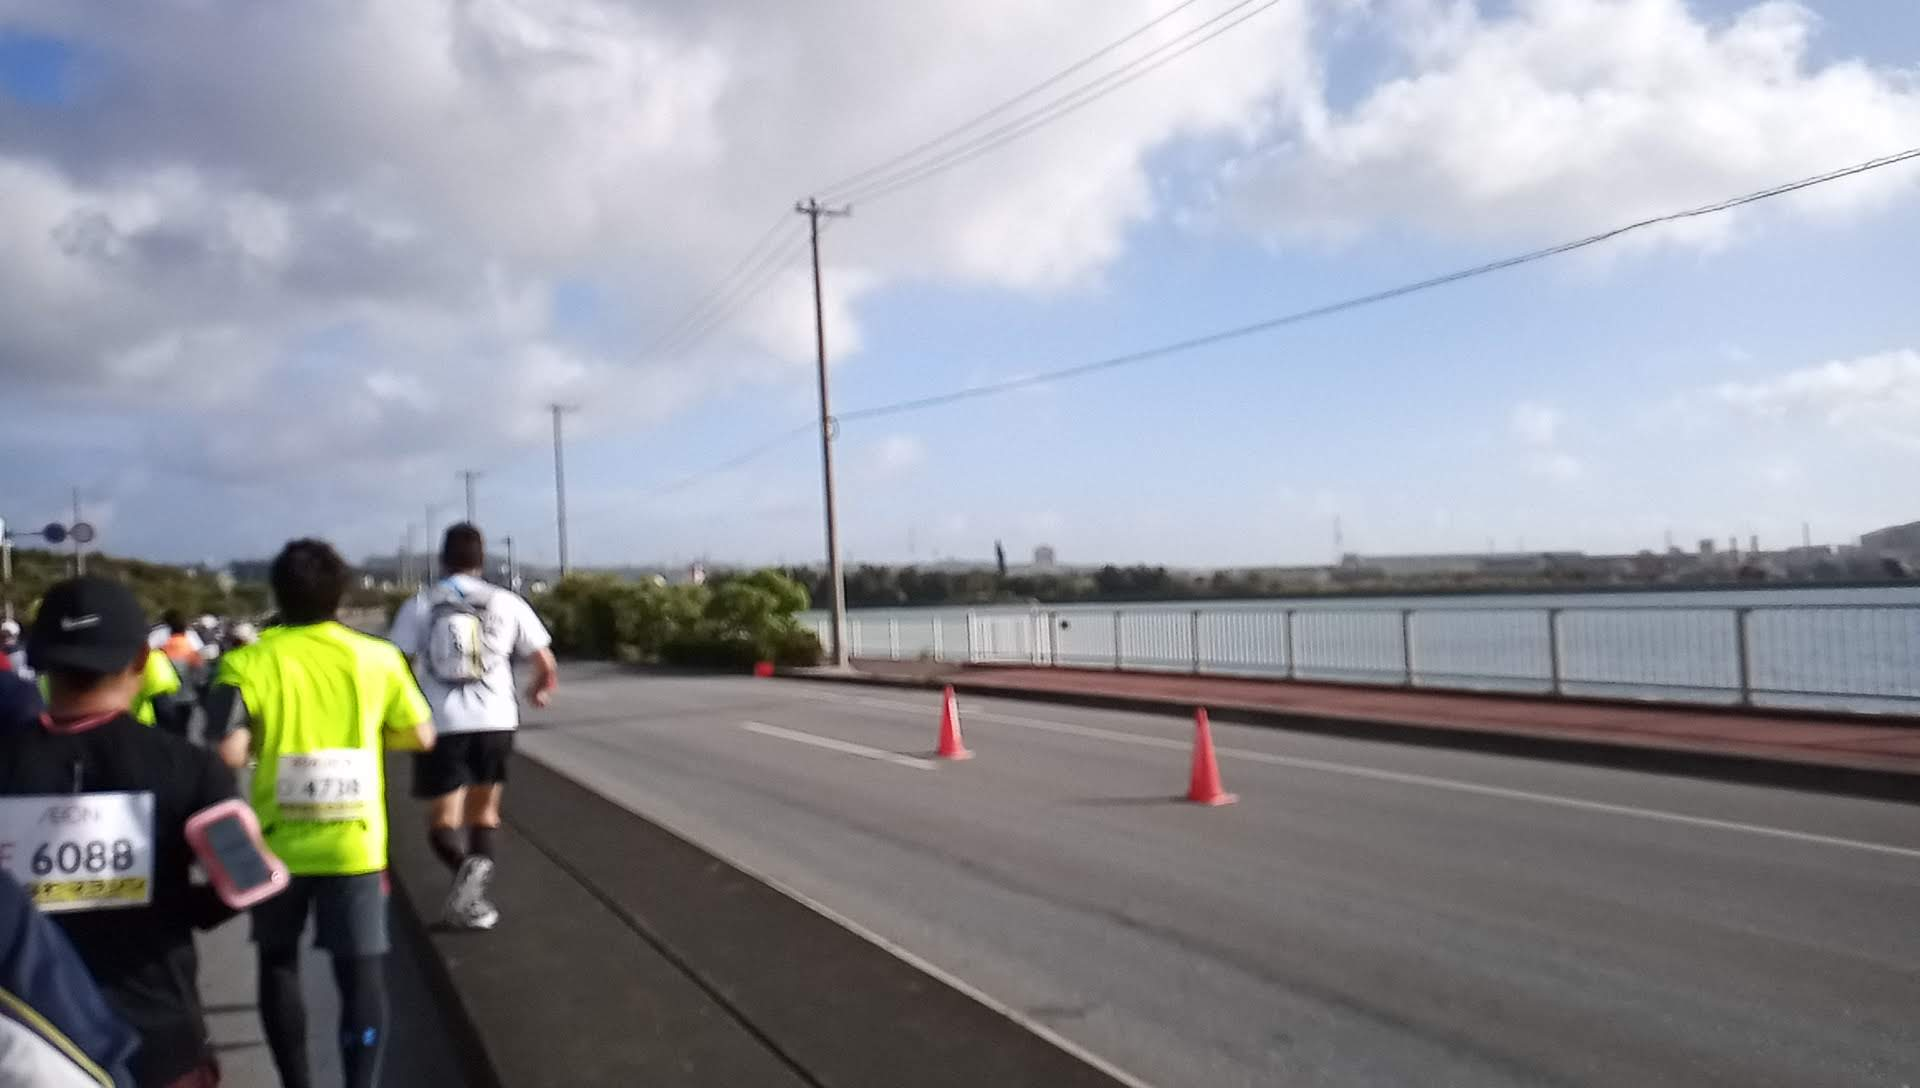 This is about 2 km from the start